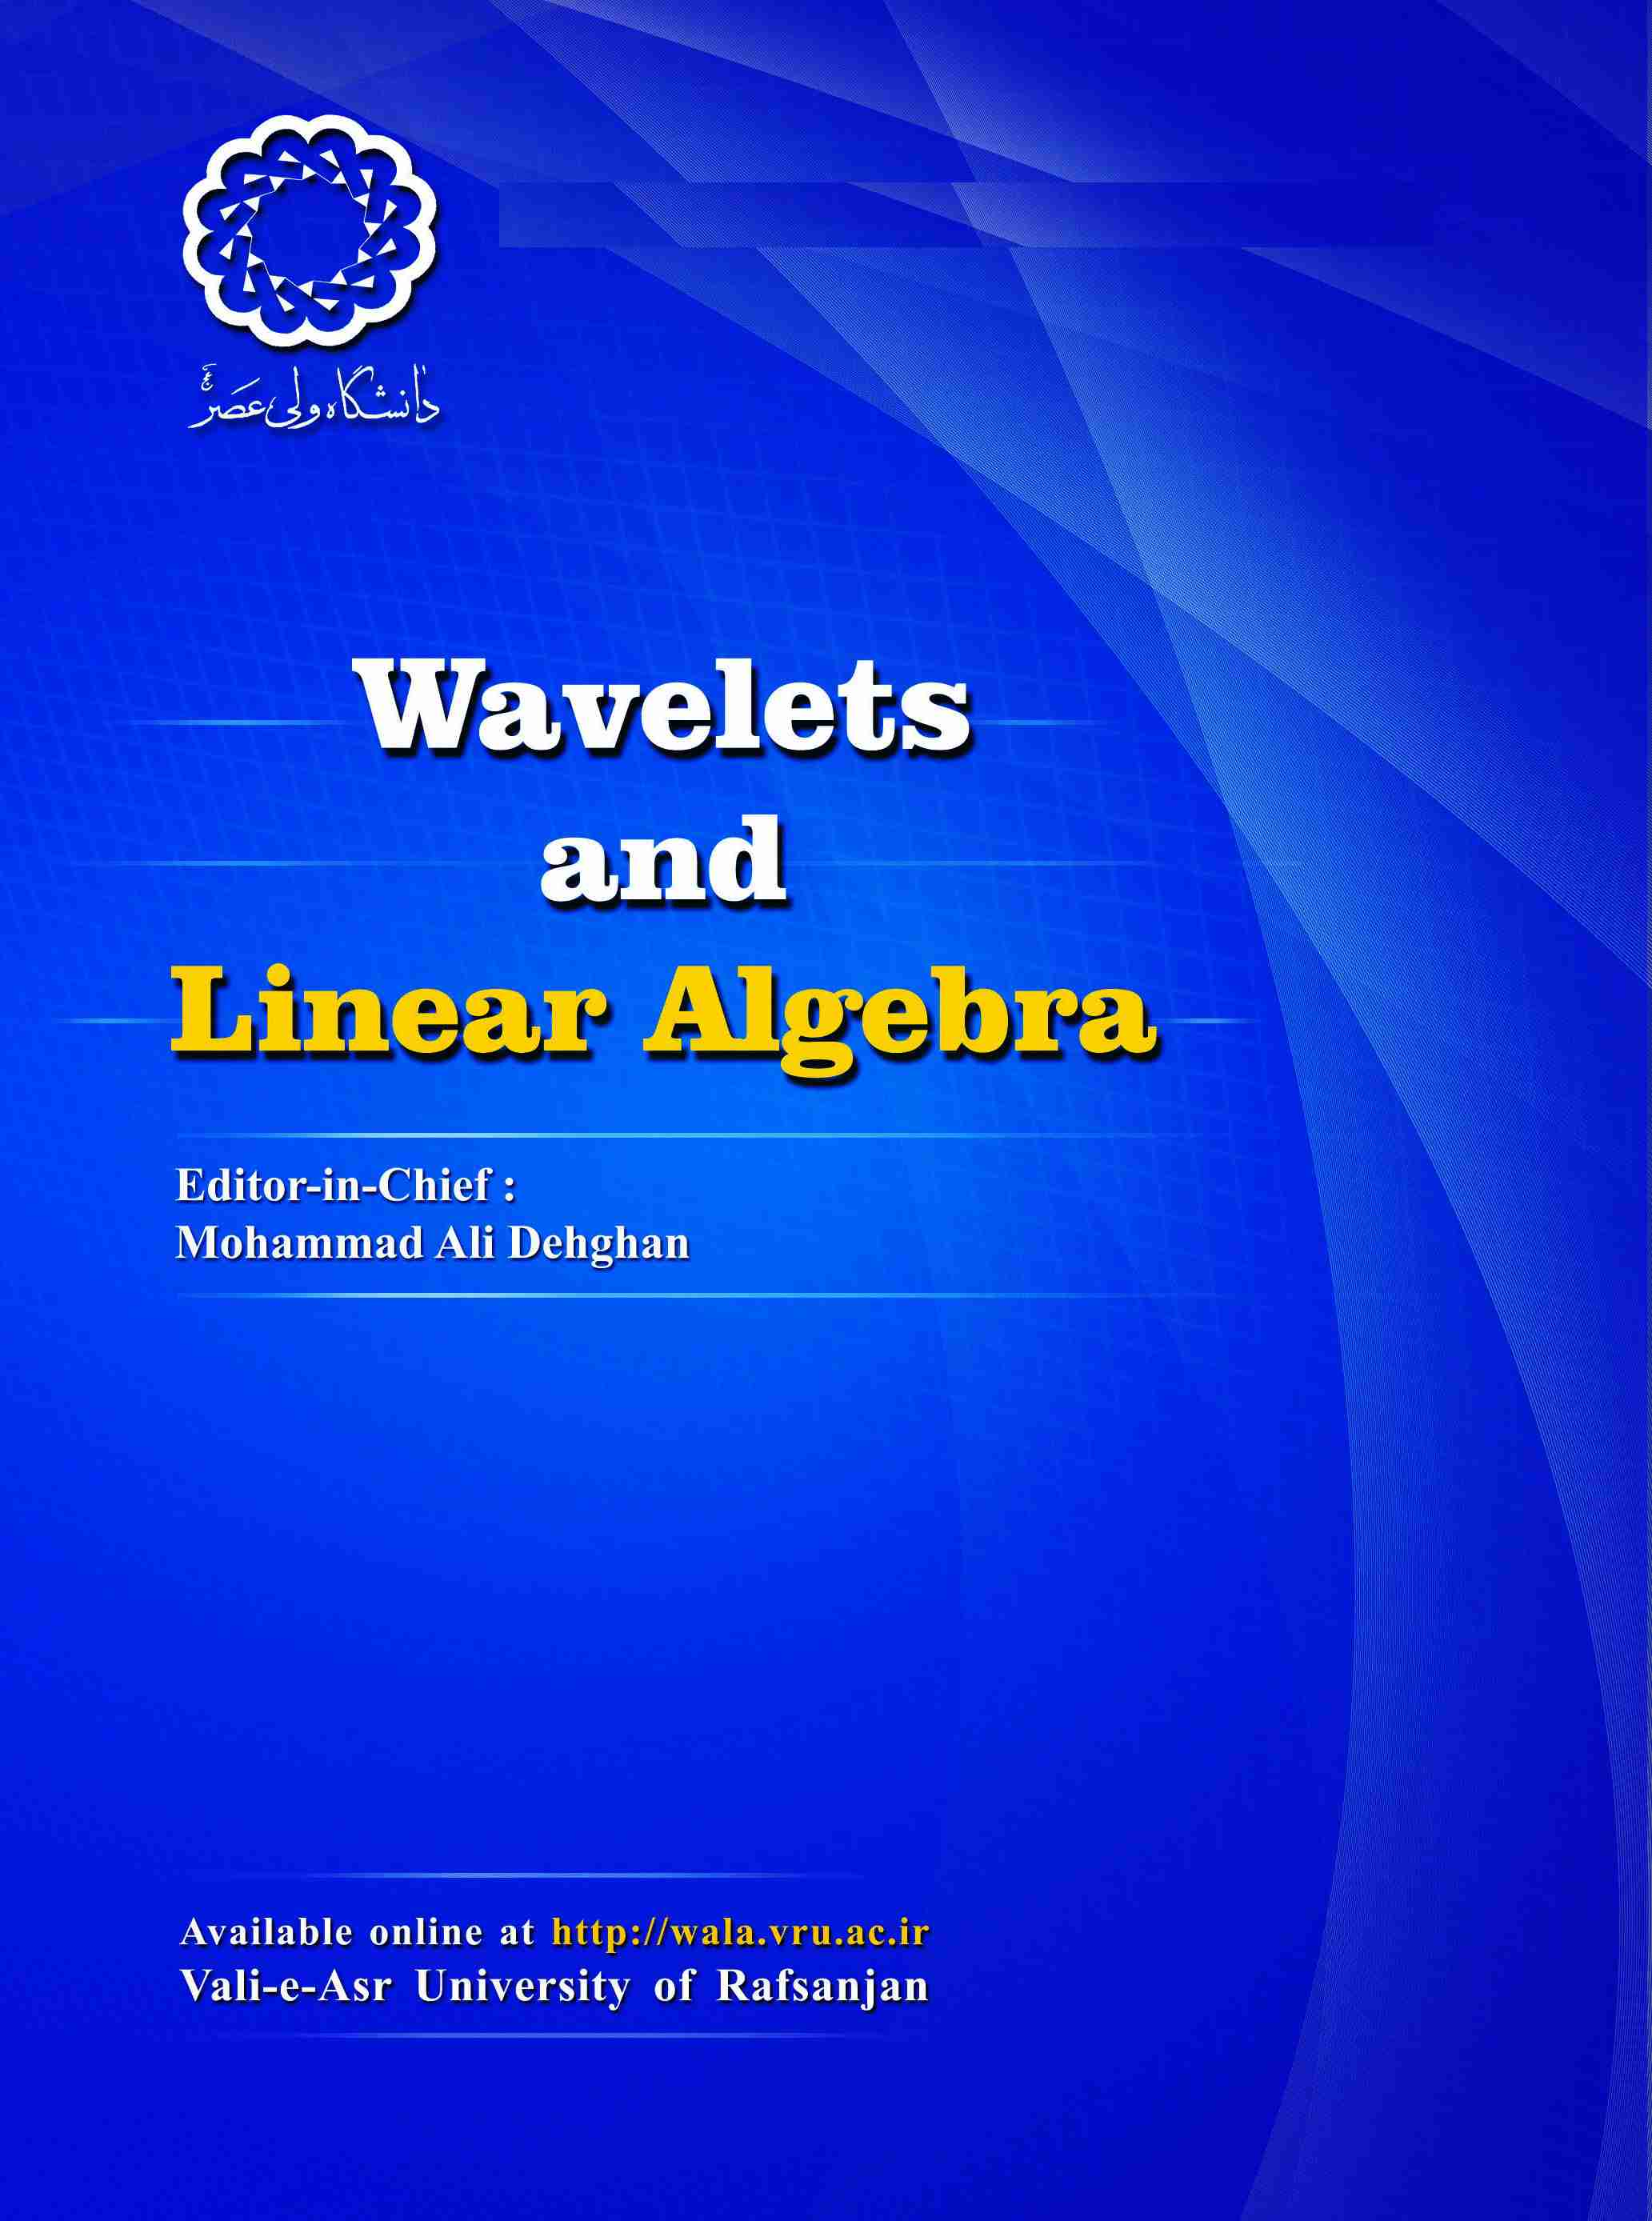 Wavelet and Linear Algebra